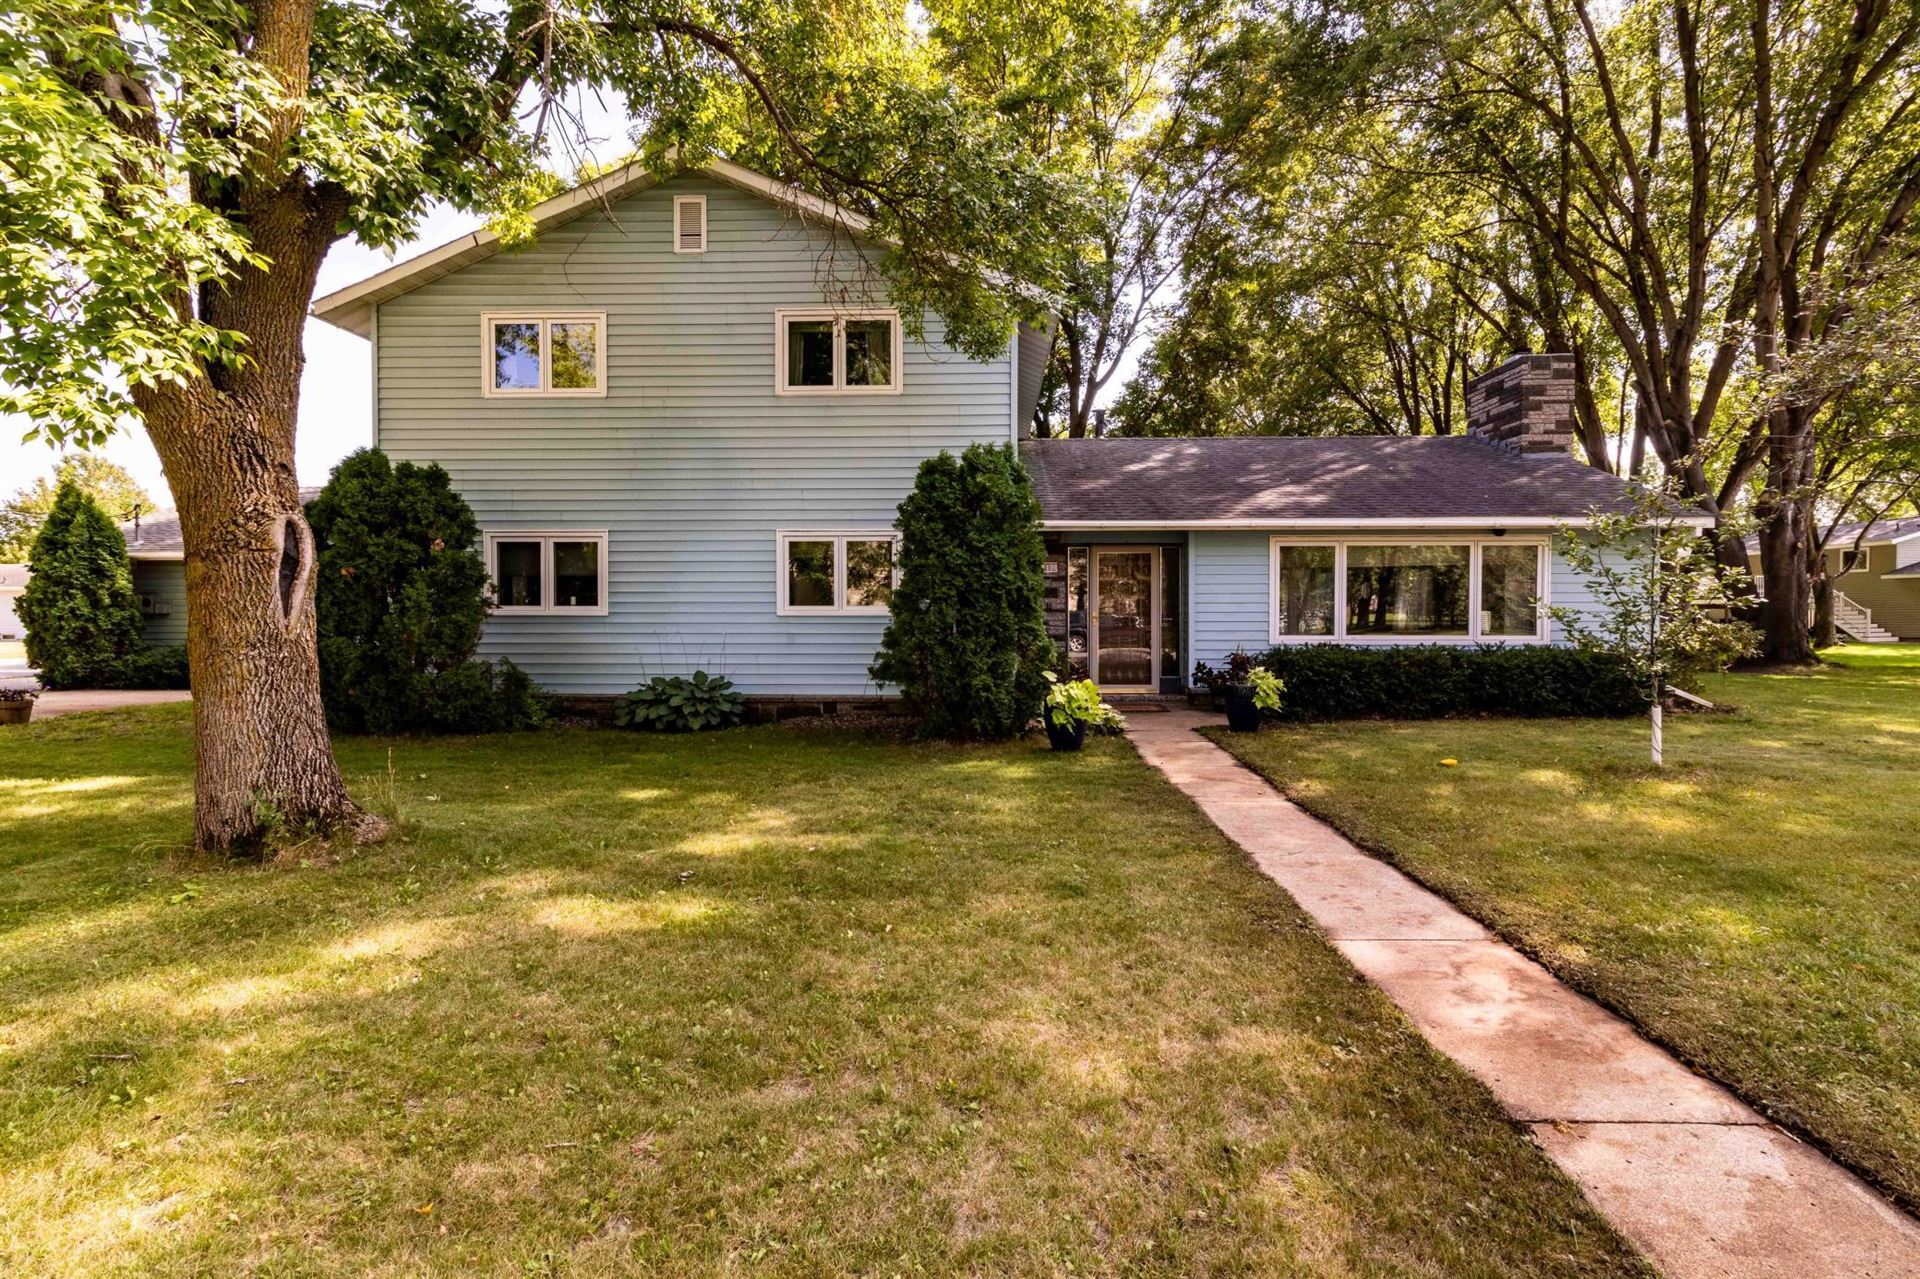 1002 1st Street N, Cold Spring, MN 56320 - #: 5645788